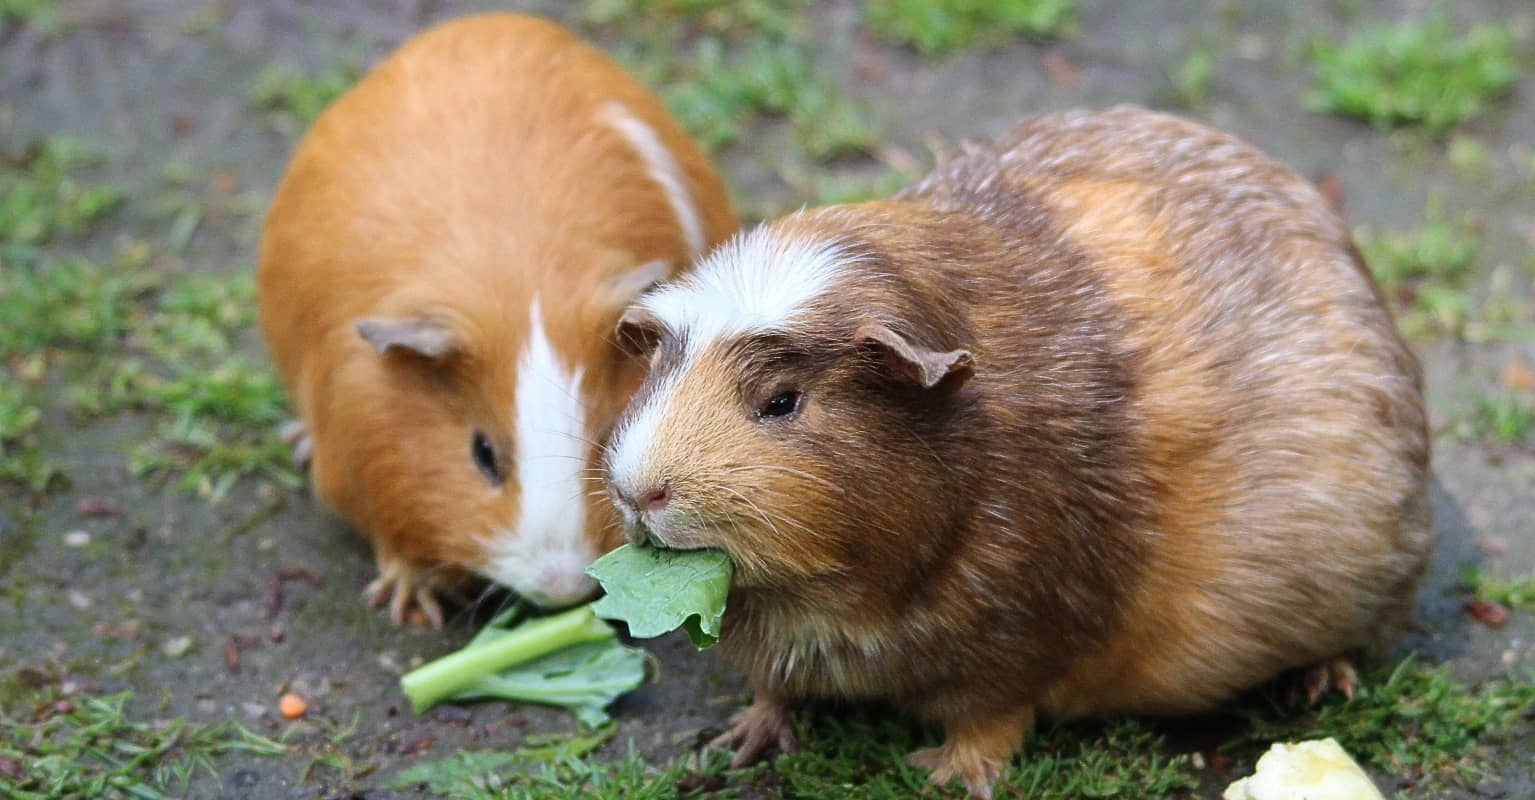 You can now buy tiny Halloween costumes for your pet guinea pig